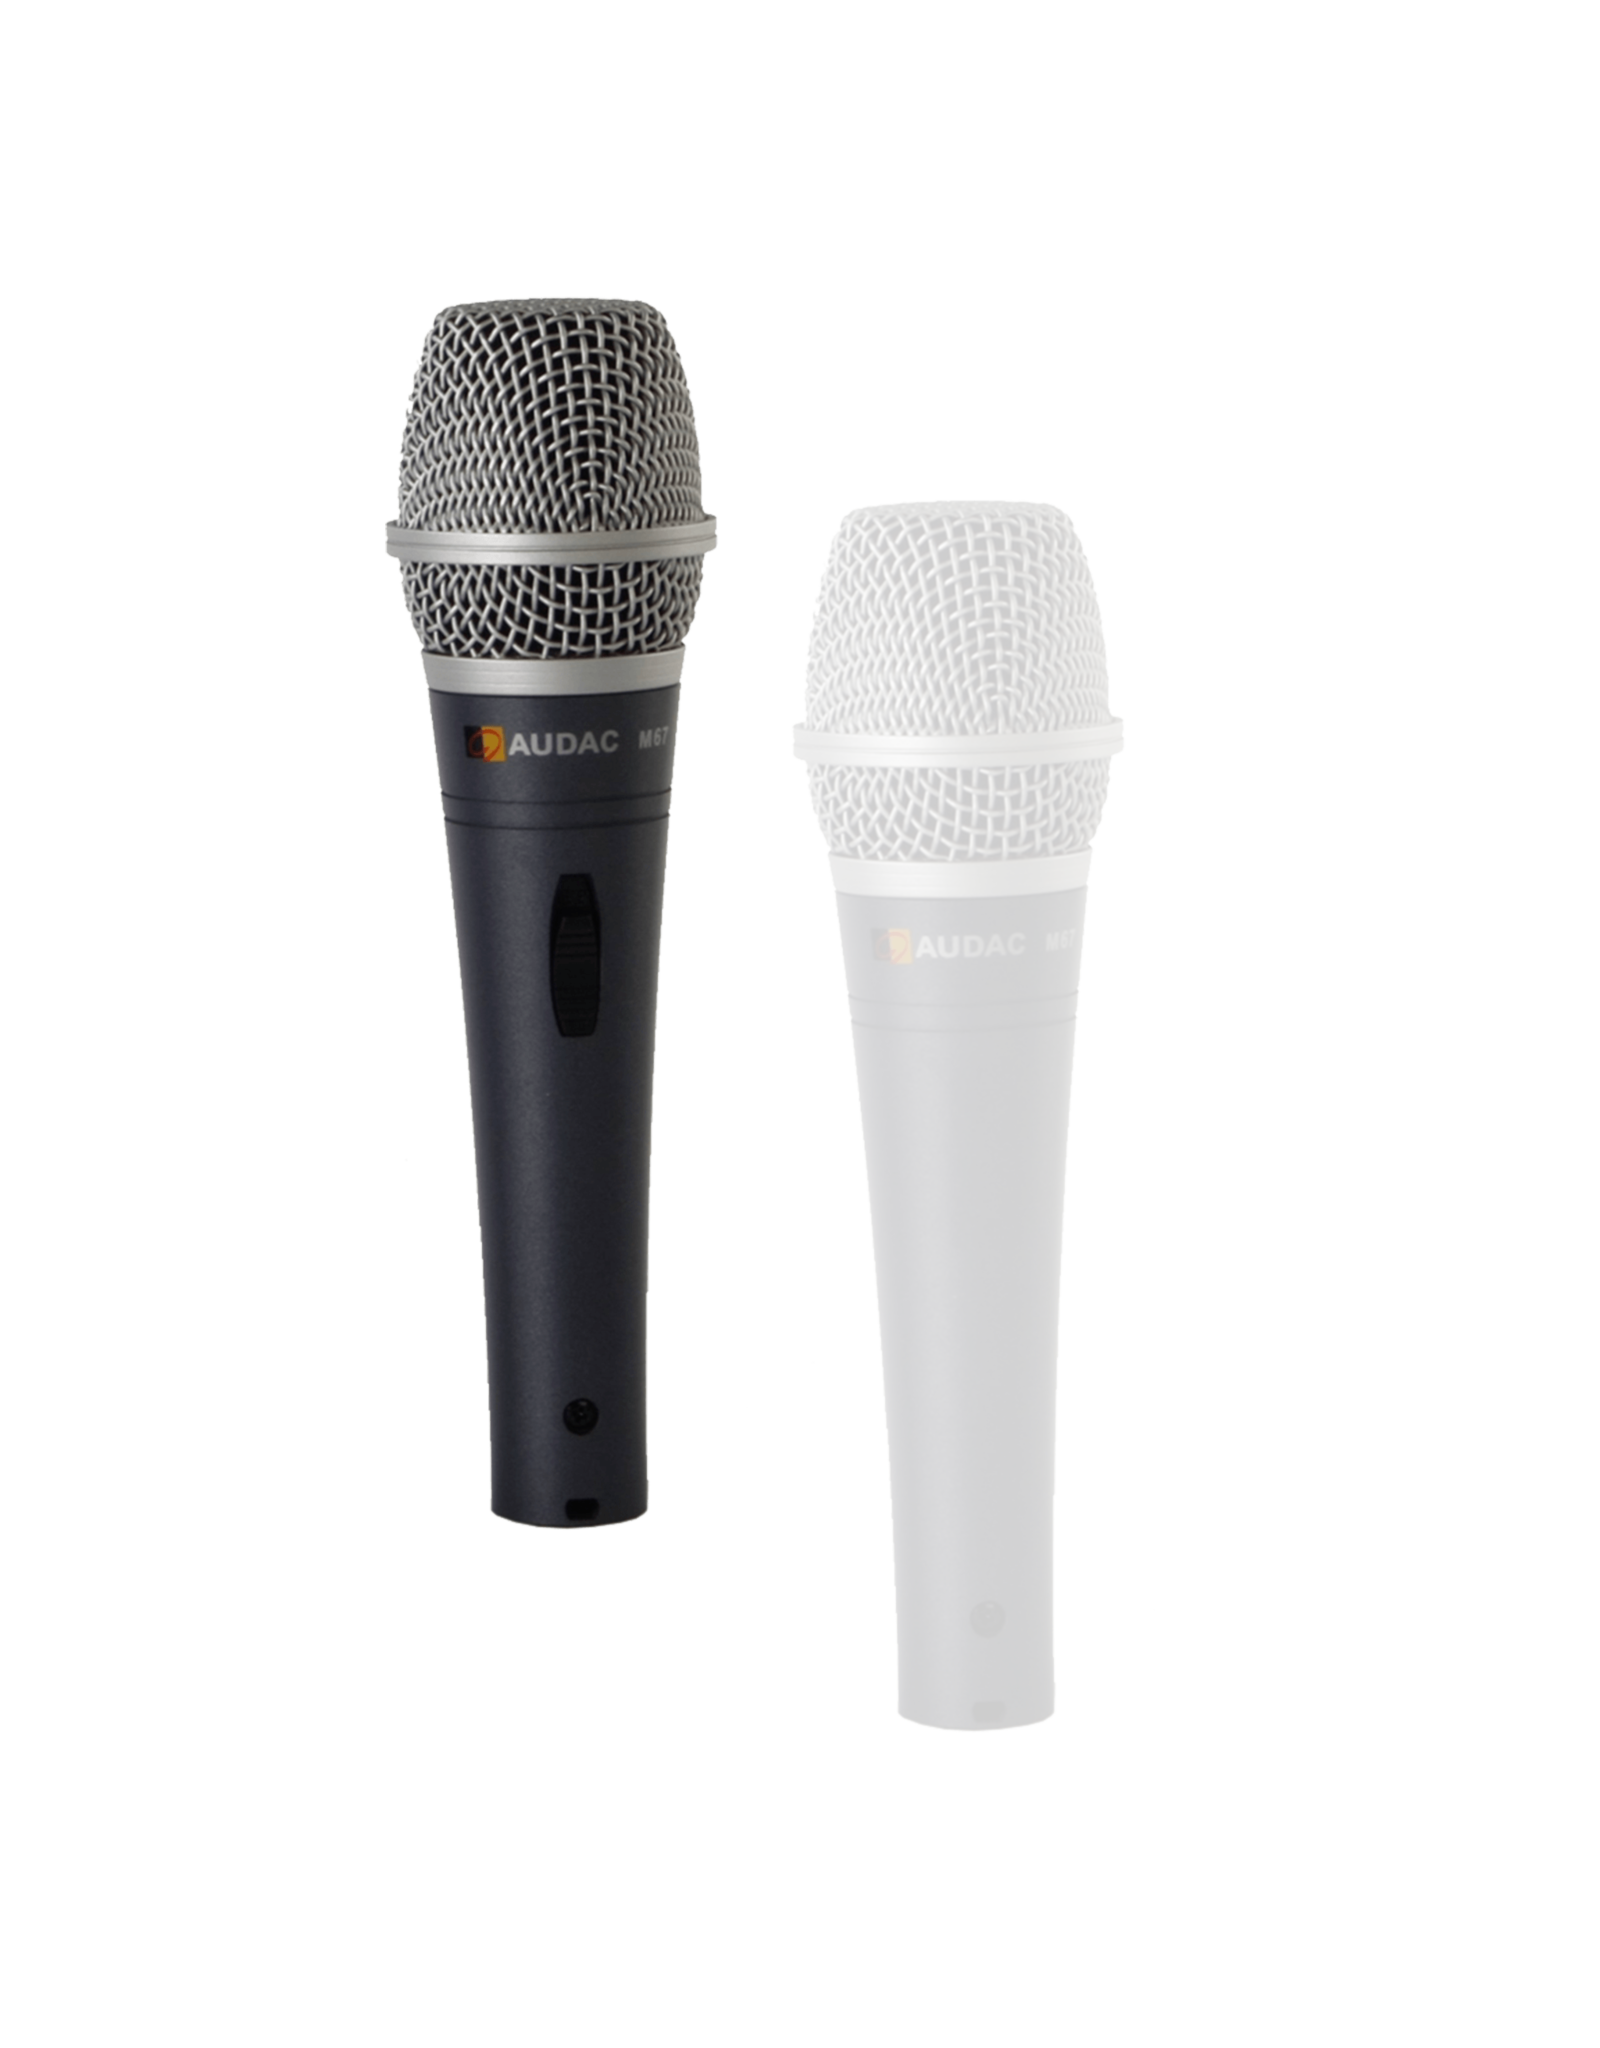 Audac Dynamic handheld microphone Vocal microphone with switch